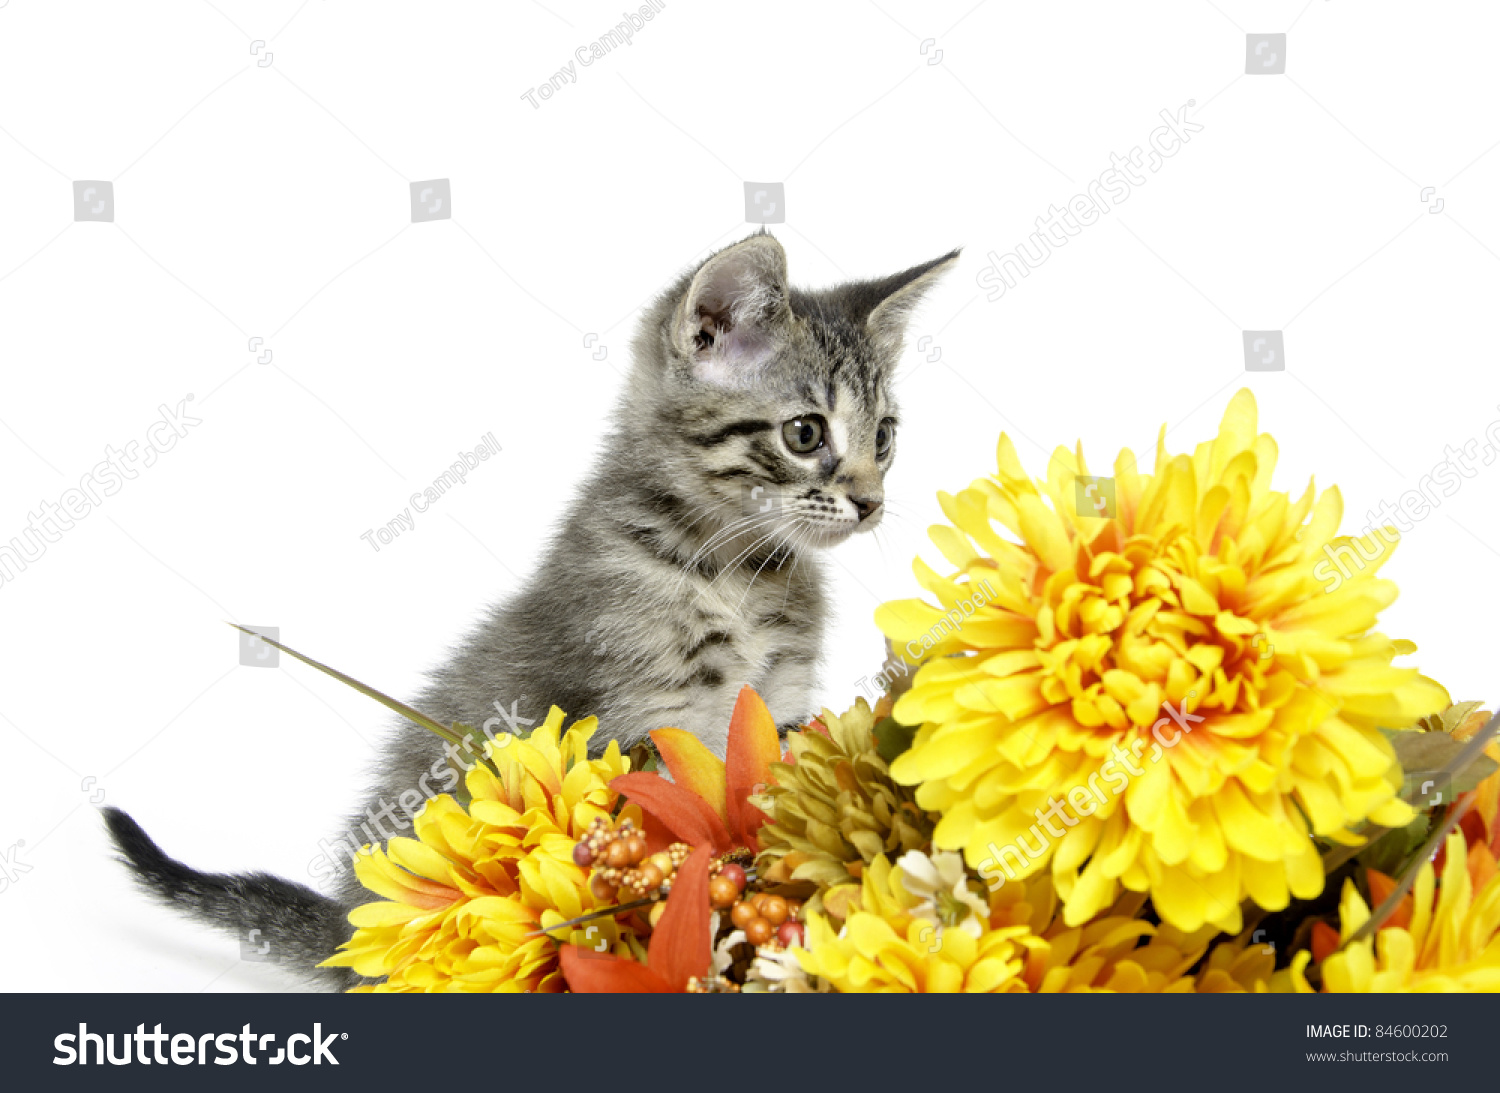 Cute Tabby Kitten Sitting With Pretty Yellow Flowers On White